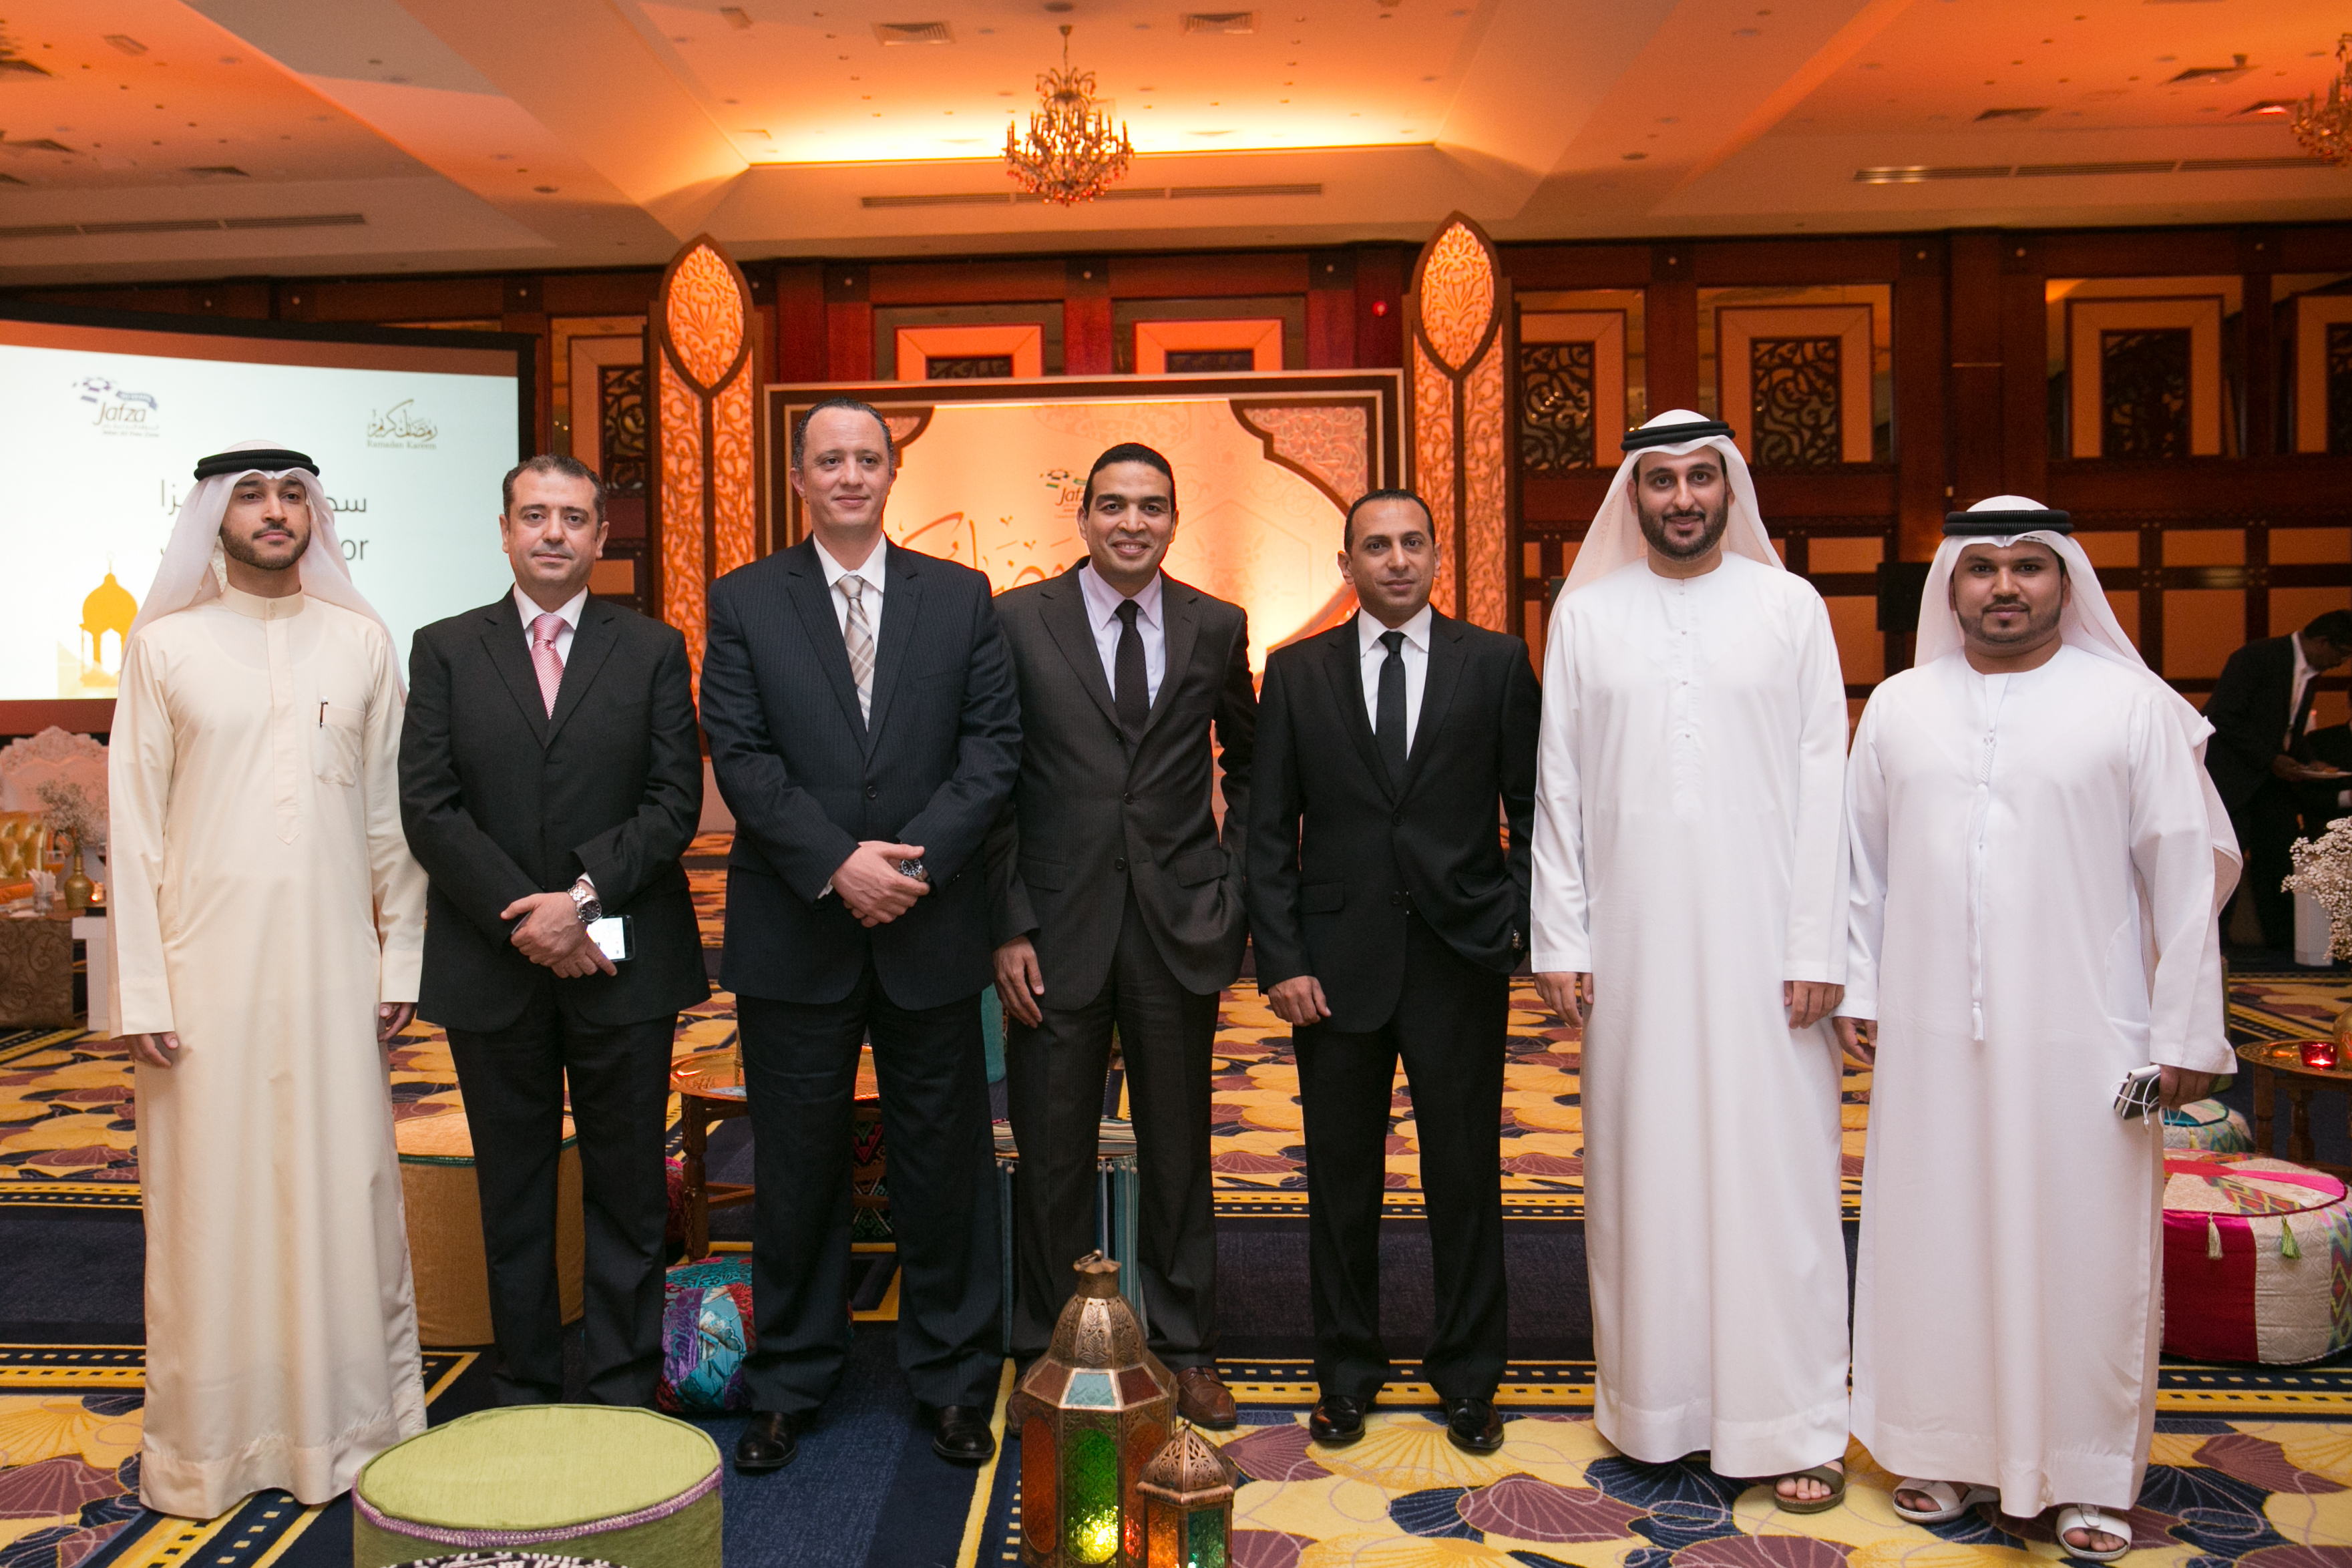 JAFZA honors a number of the Government of Dubai Legal Affairs Department's legal consultants during the Ramadan Suhoor Event including Mr.Mohamed El Sherif, Mr.Omer Eltom, Mr.Ahmed Ezzat, Dr.Mohamed Othman, Mr.Tareq Haridy and Mr. afiq Raouf 12/07/2016